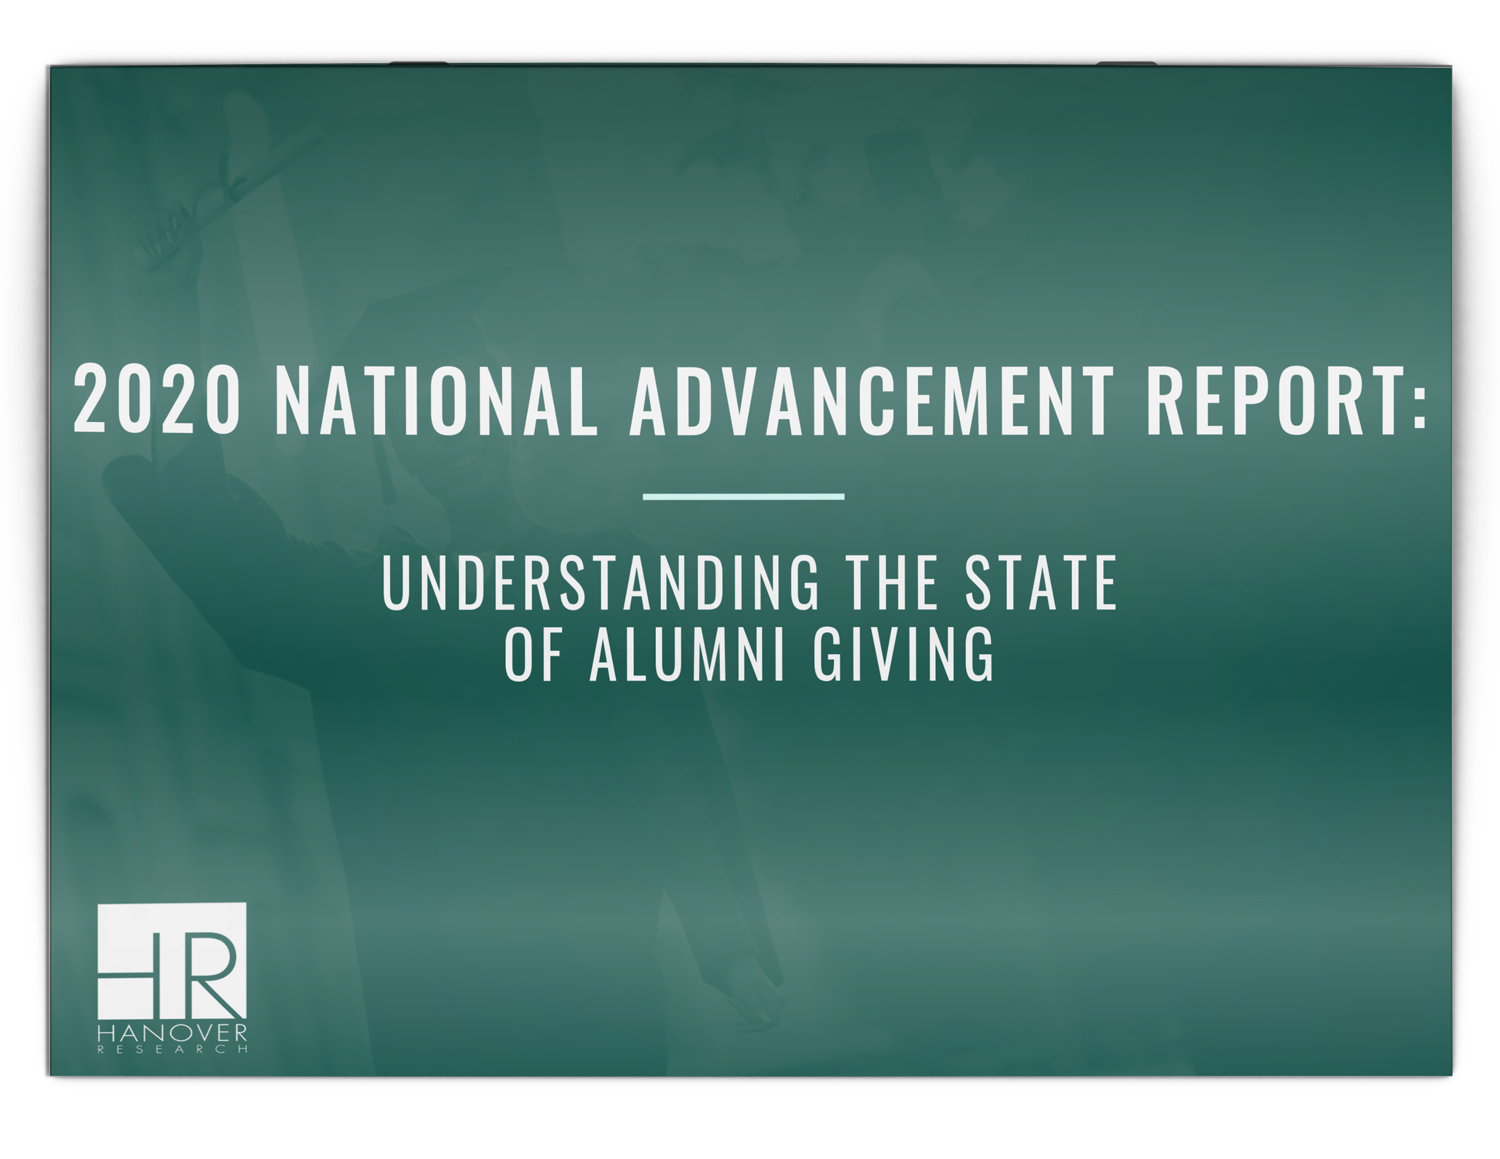 2020 national advancement report alumni giving